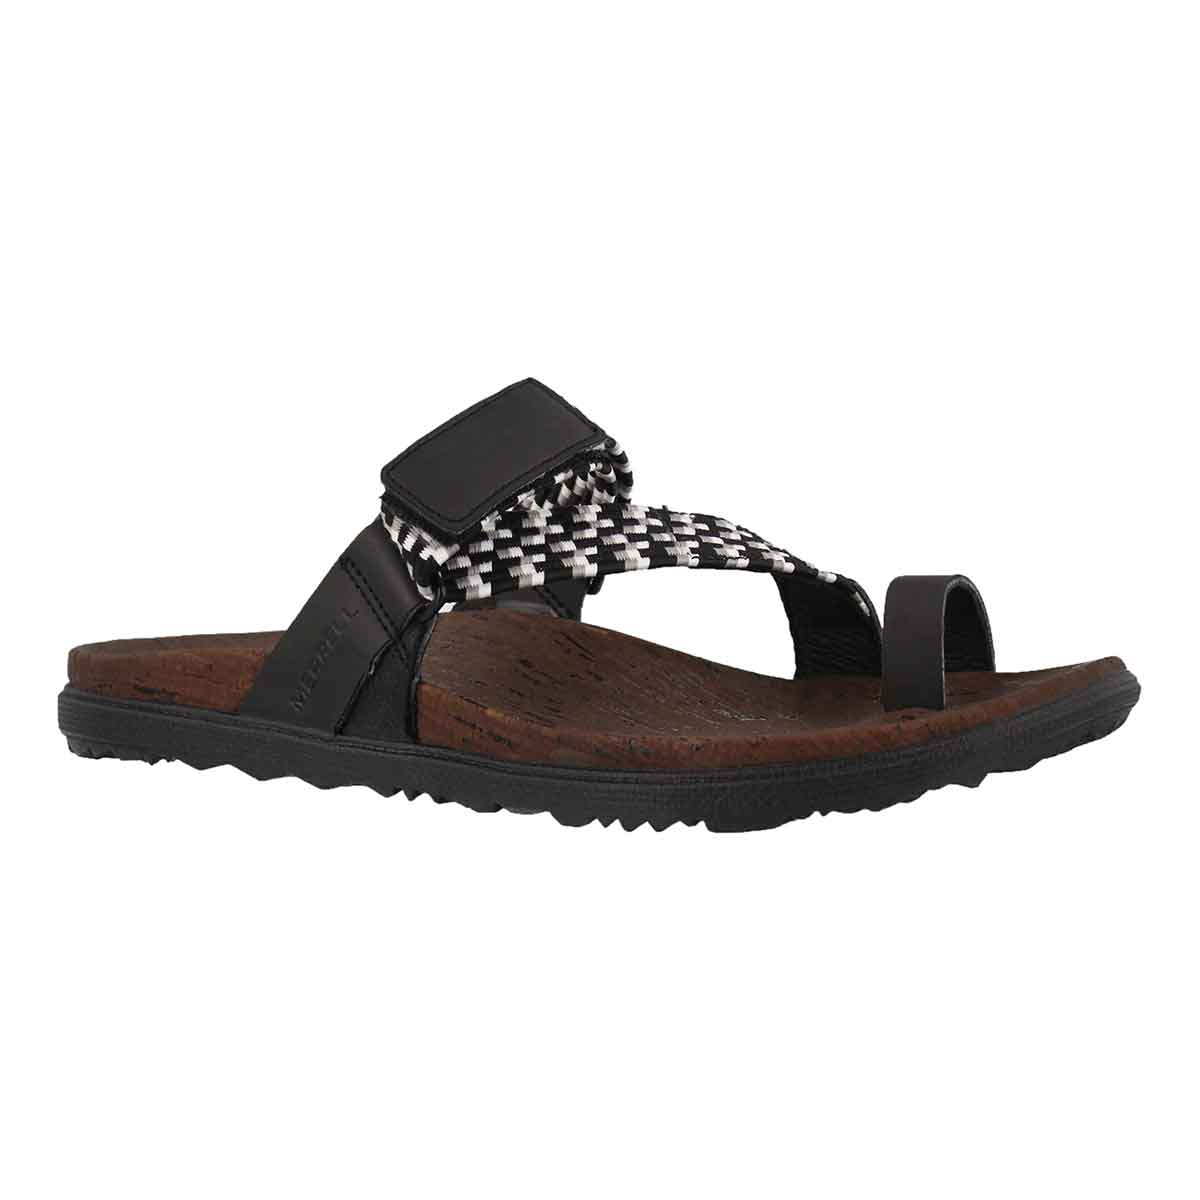 Women's AROUND TOWN SUVUE WOVEN black thong sandal